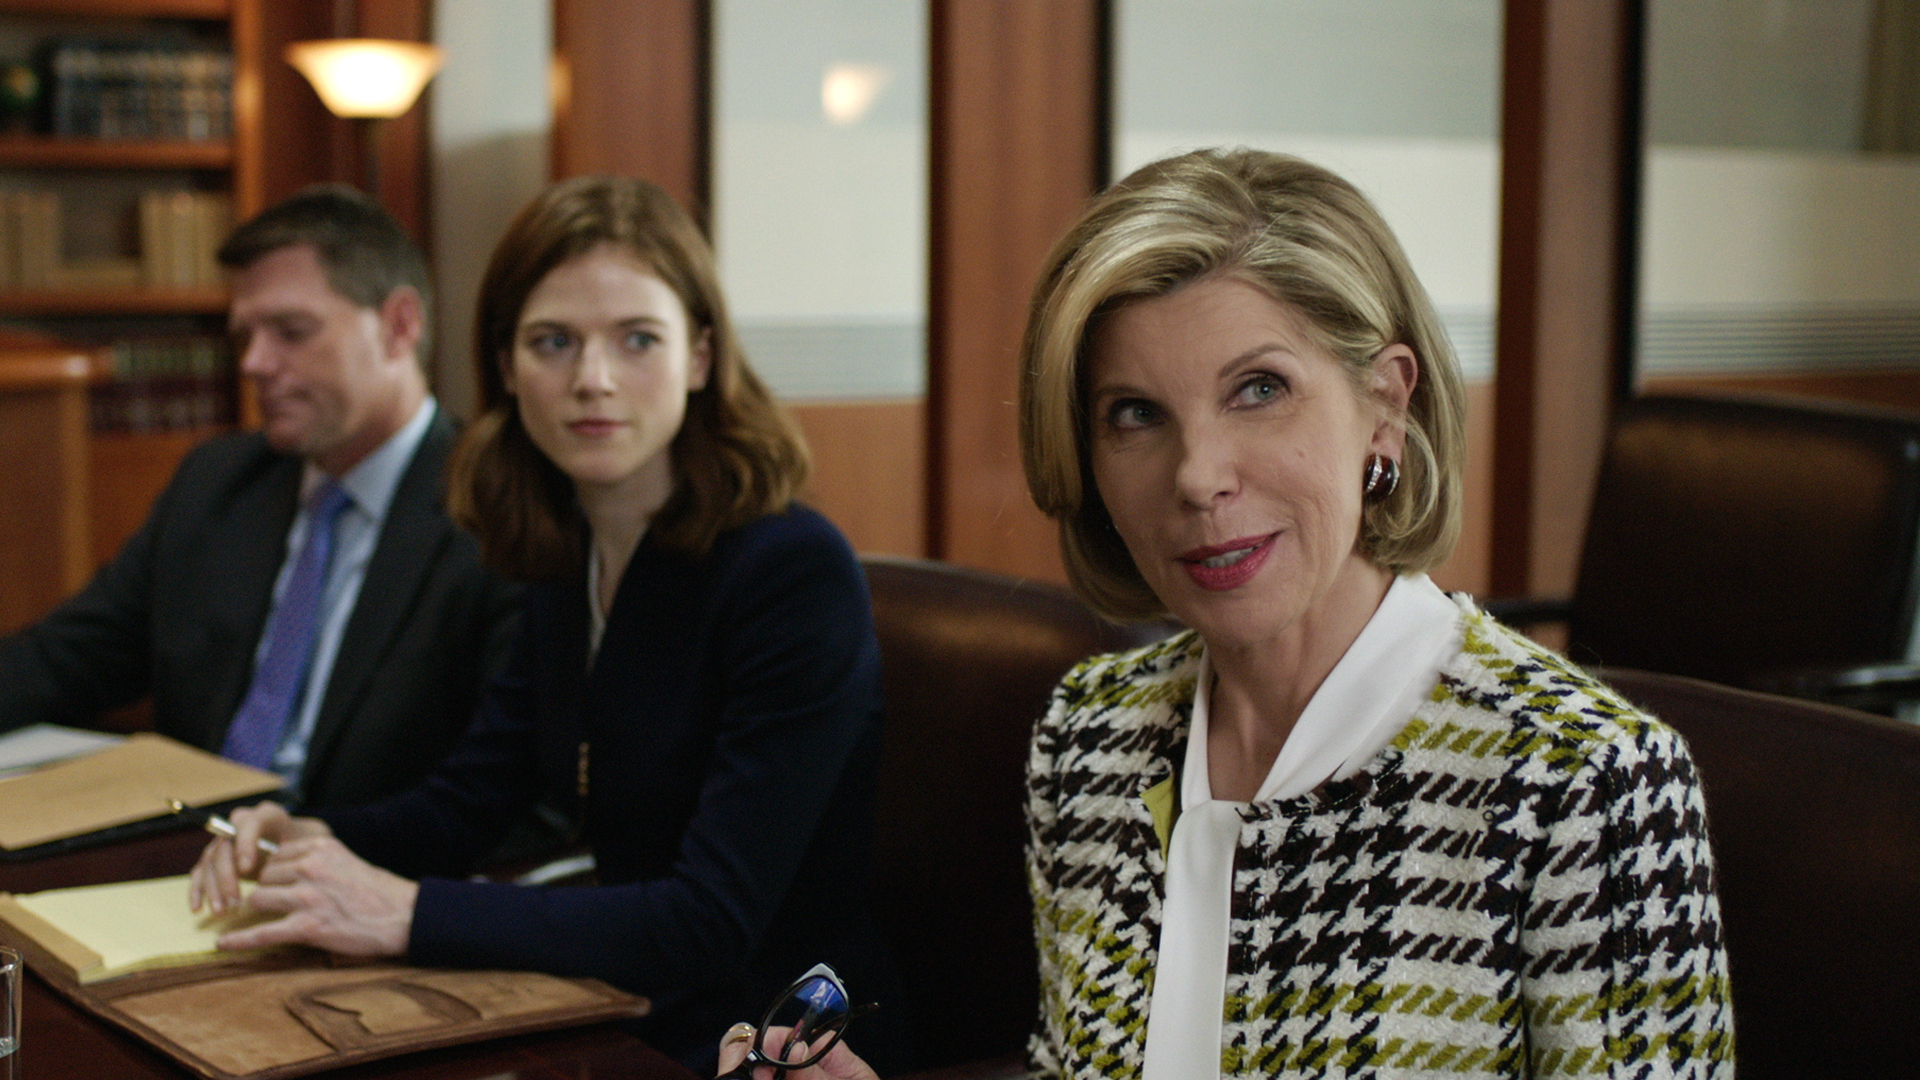 Watch The Good Fight Season 1 Episode 1: Inauguration - Full show on CBS  All Access